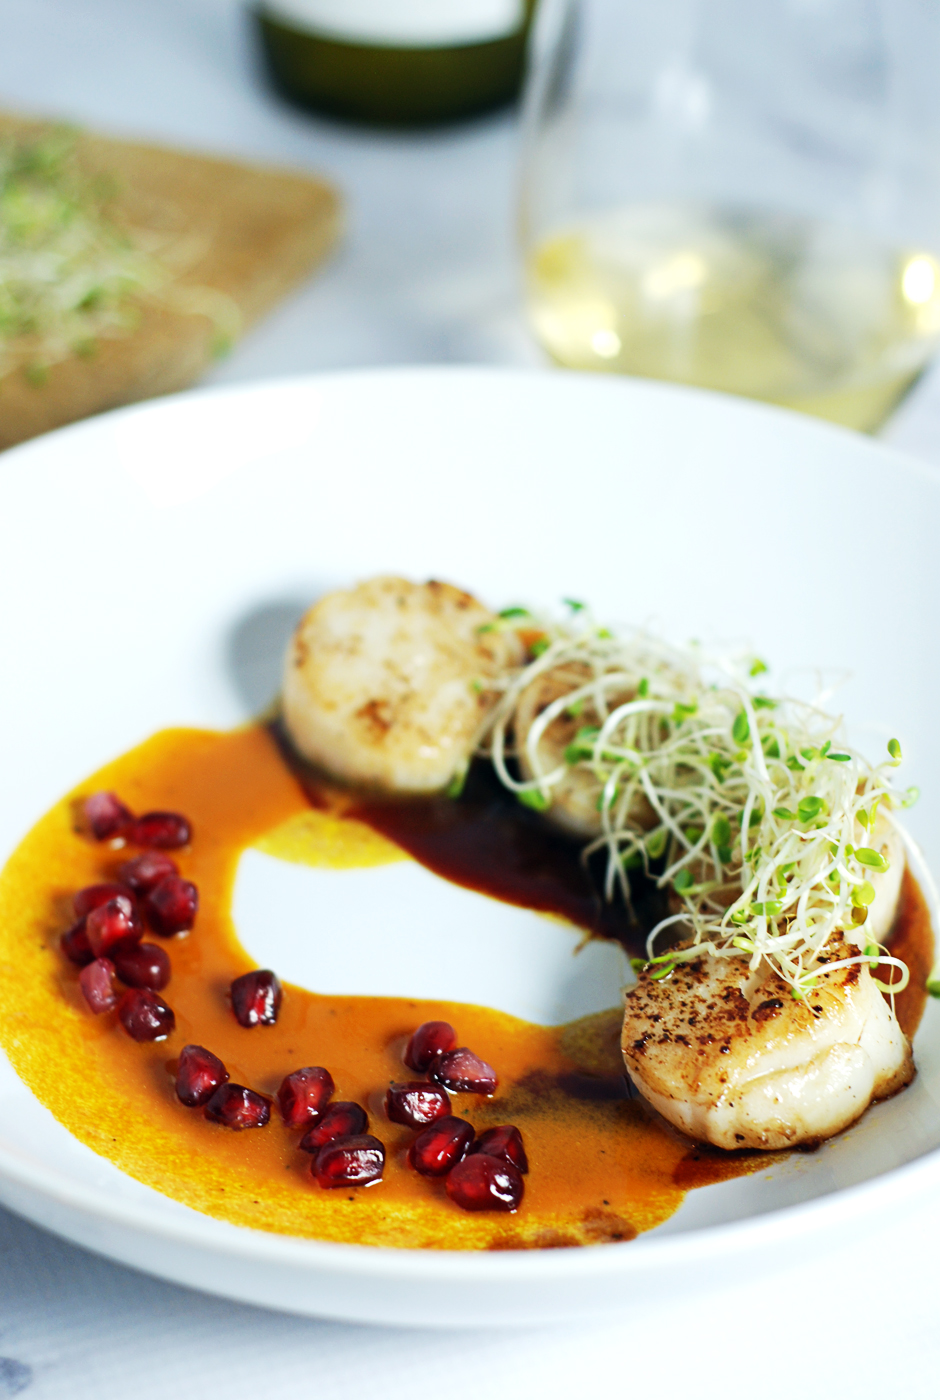 Seared Scallops with Duo of Pomegranate and Carrot Sauce